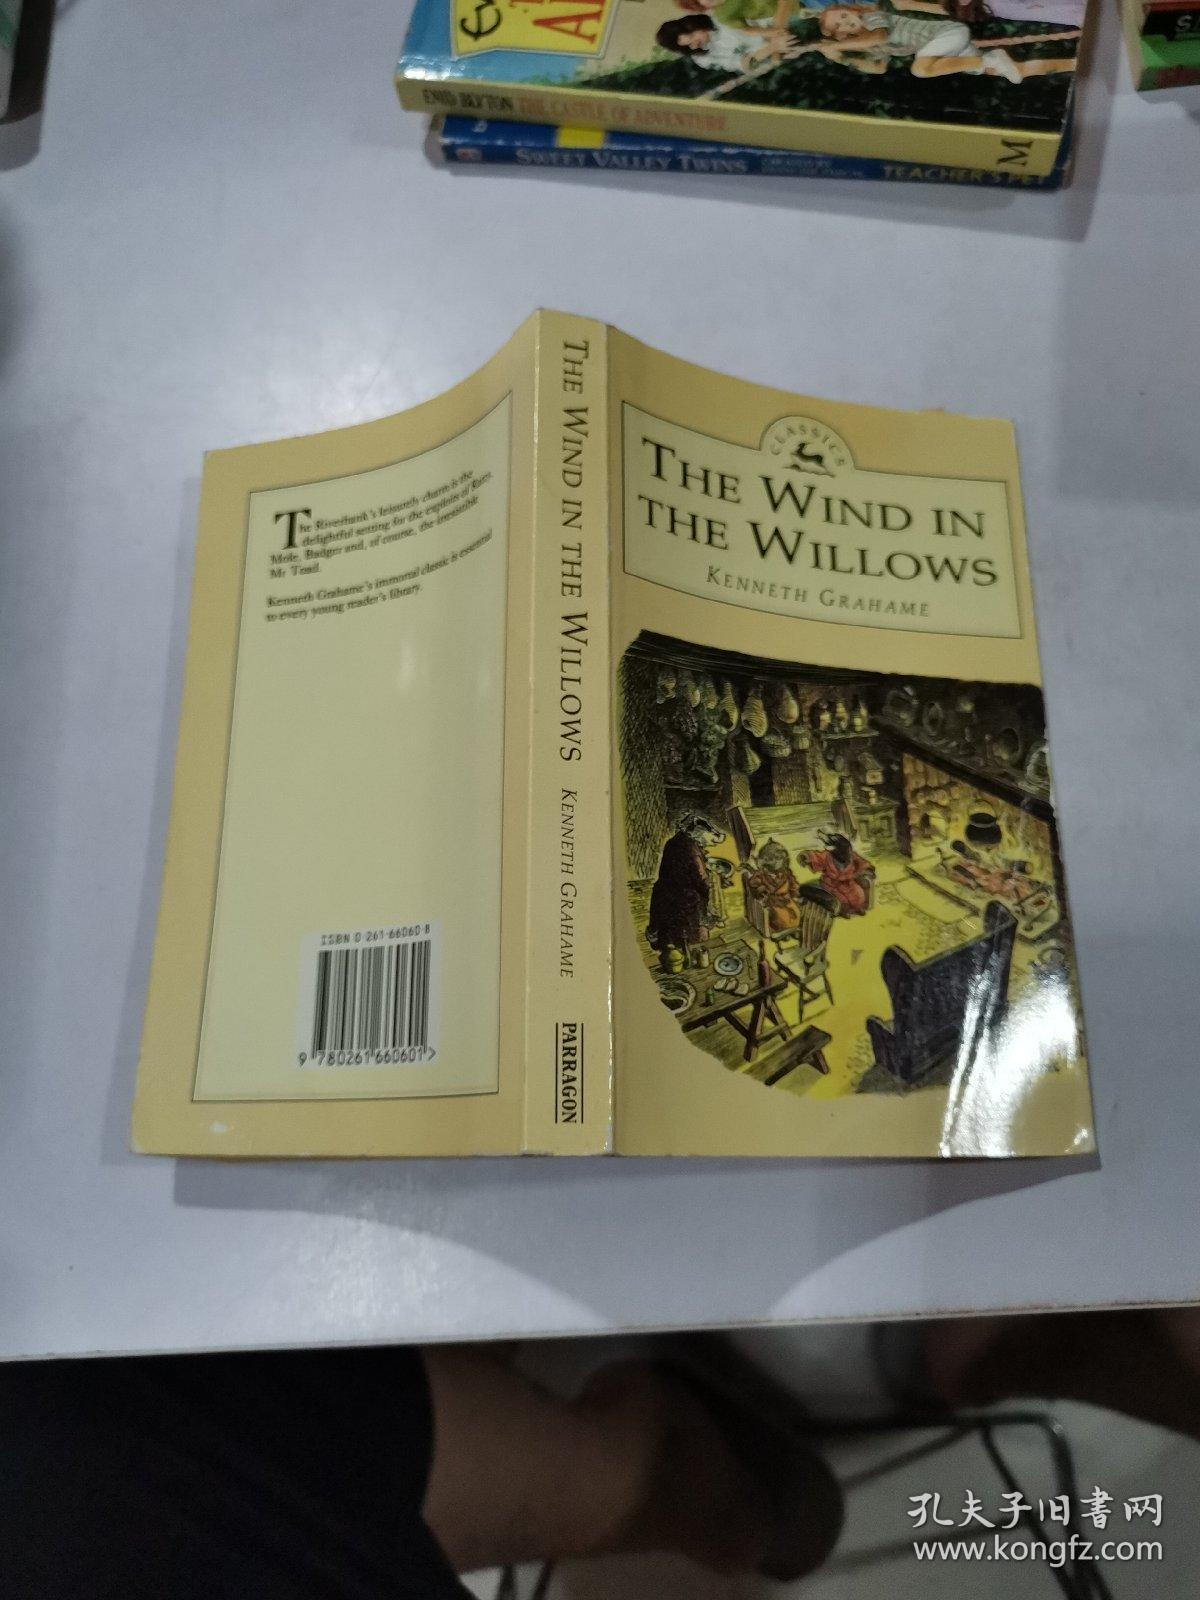 the wind in the willows : 柳树 上的风